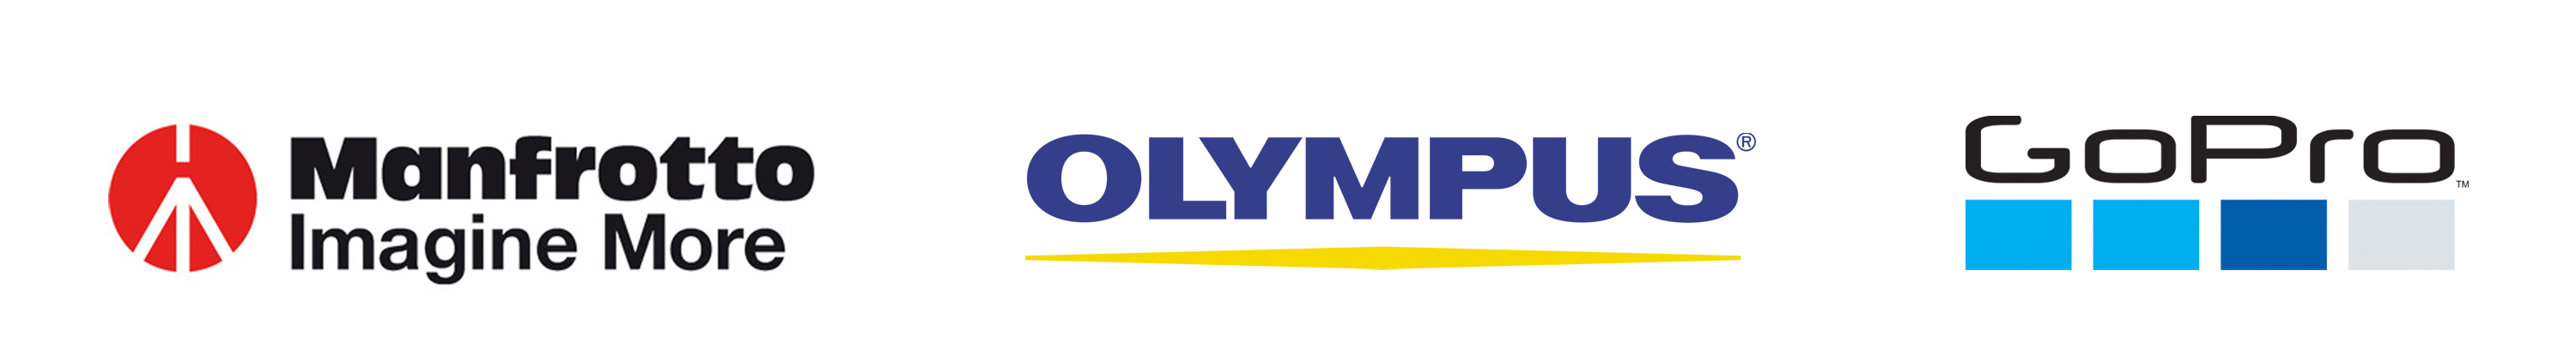 Olympus_Photo_Trips_NEW_logo.jpg